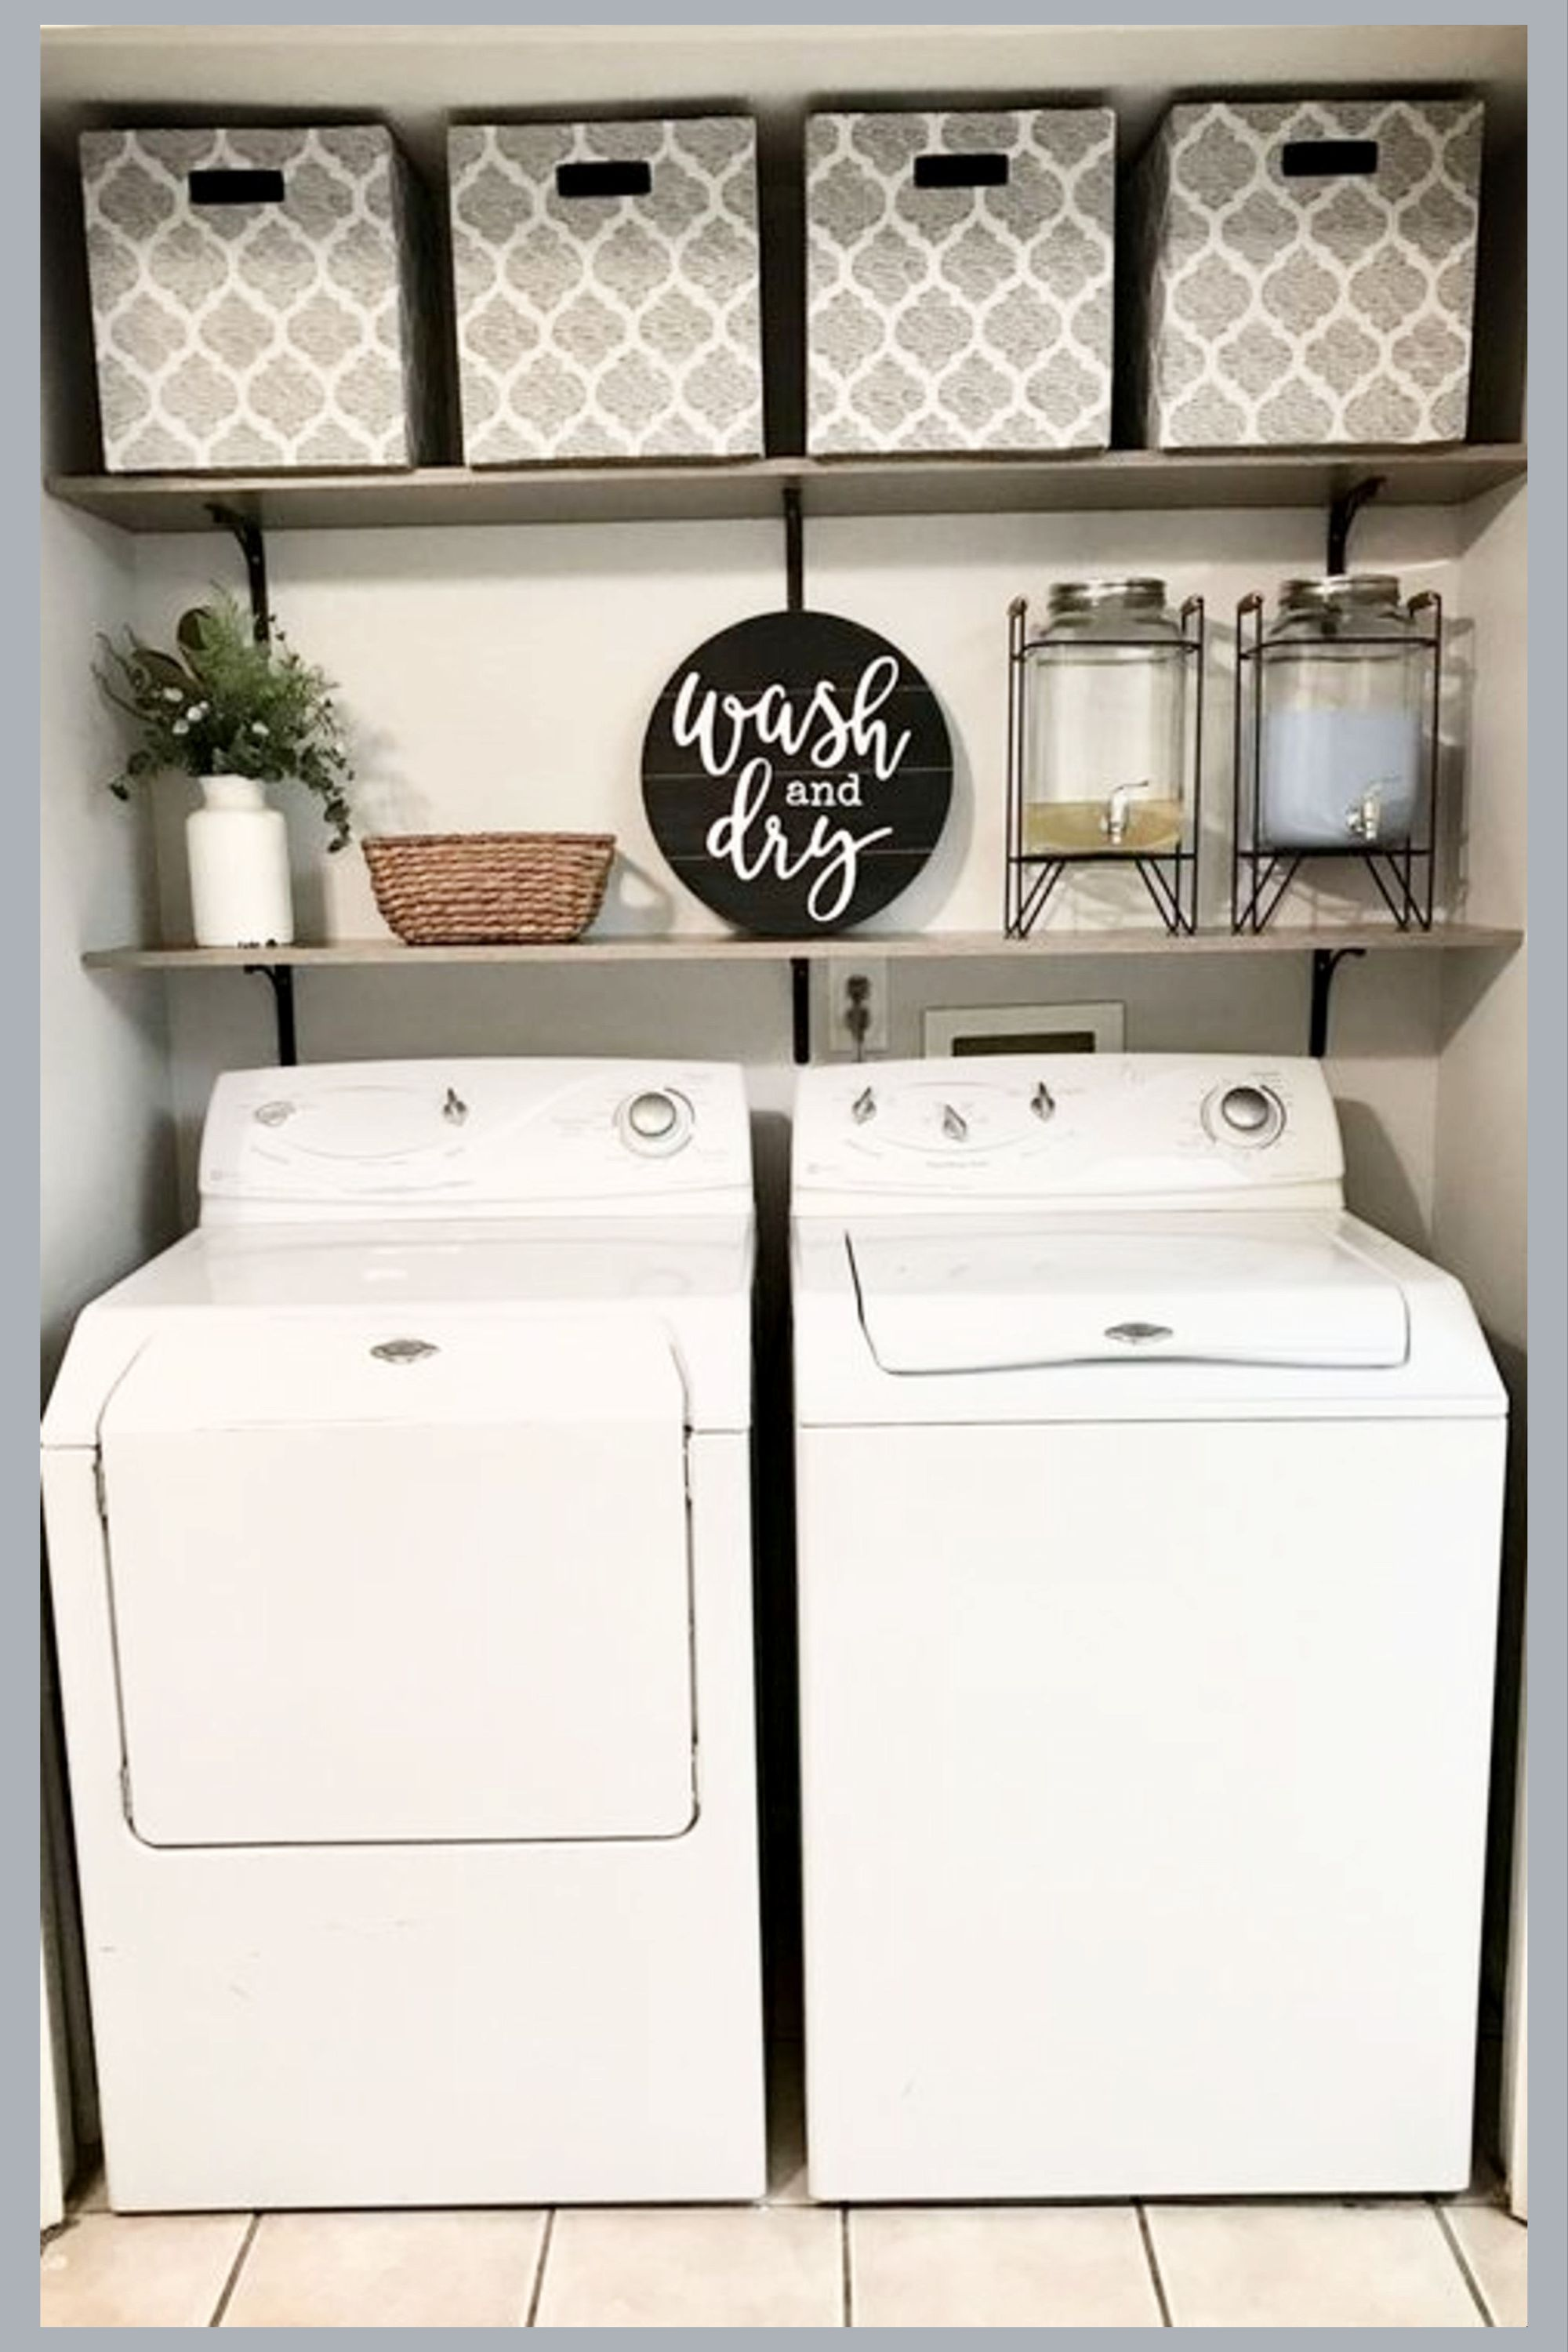 Small Laundry Room Ideas Space Saving Diy Creative Ideas For Tiny Laundry Rooms Small Laundry Room Dream Laundry Room Tiny Laundry Rooms Small Laundry Rooms